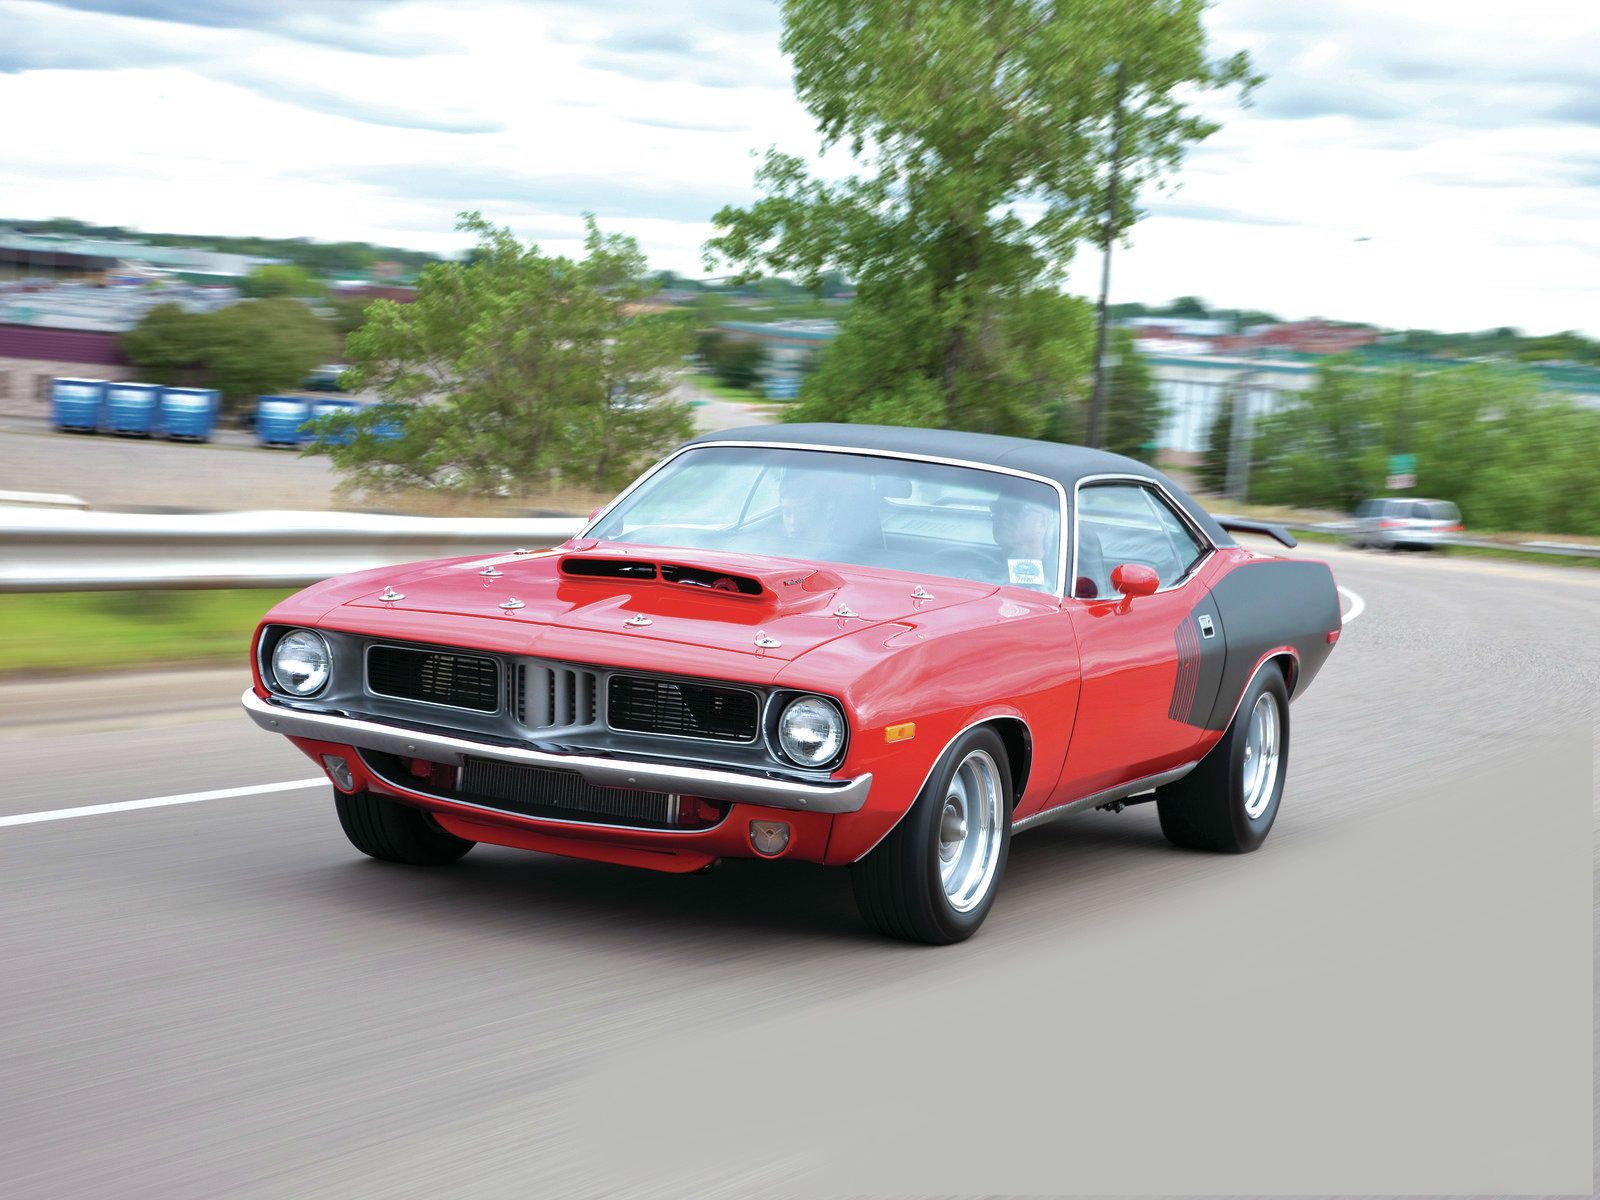 ccrp-1210-1972-plymouth-barracuda-e-ticket-ride-01